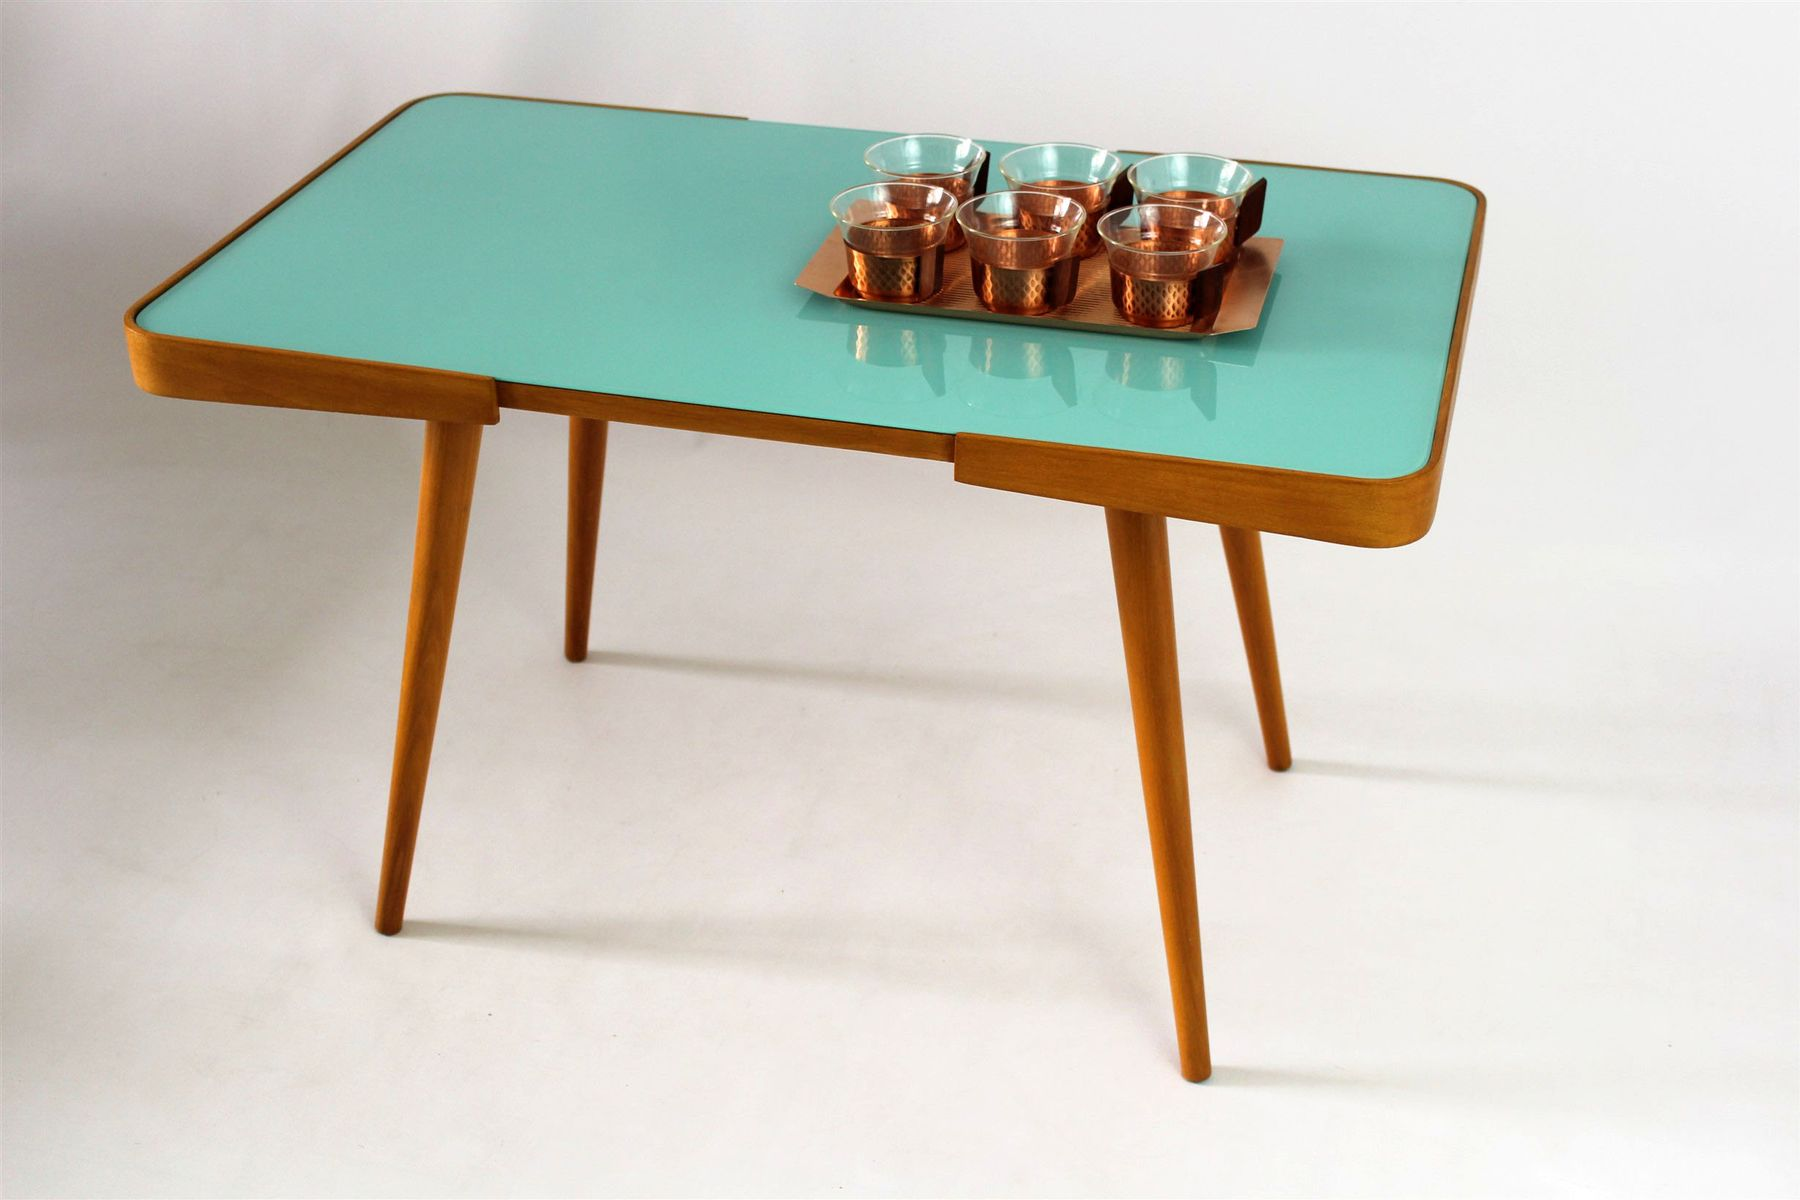 Czech Coffee Table with Glass Top by Jiř­ Jiroutek 1960s for sale